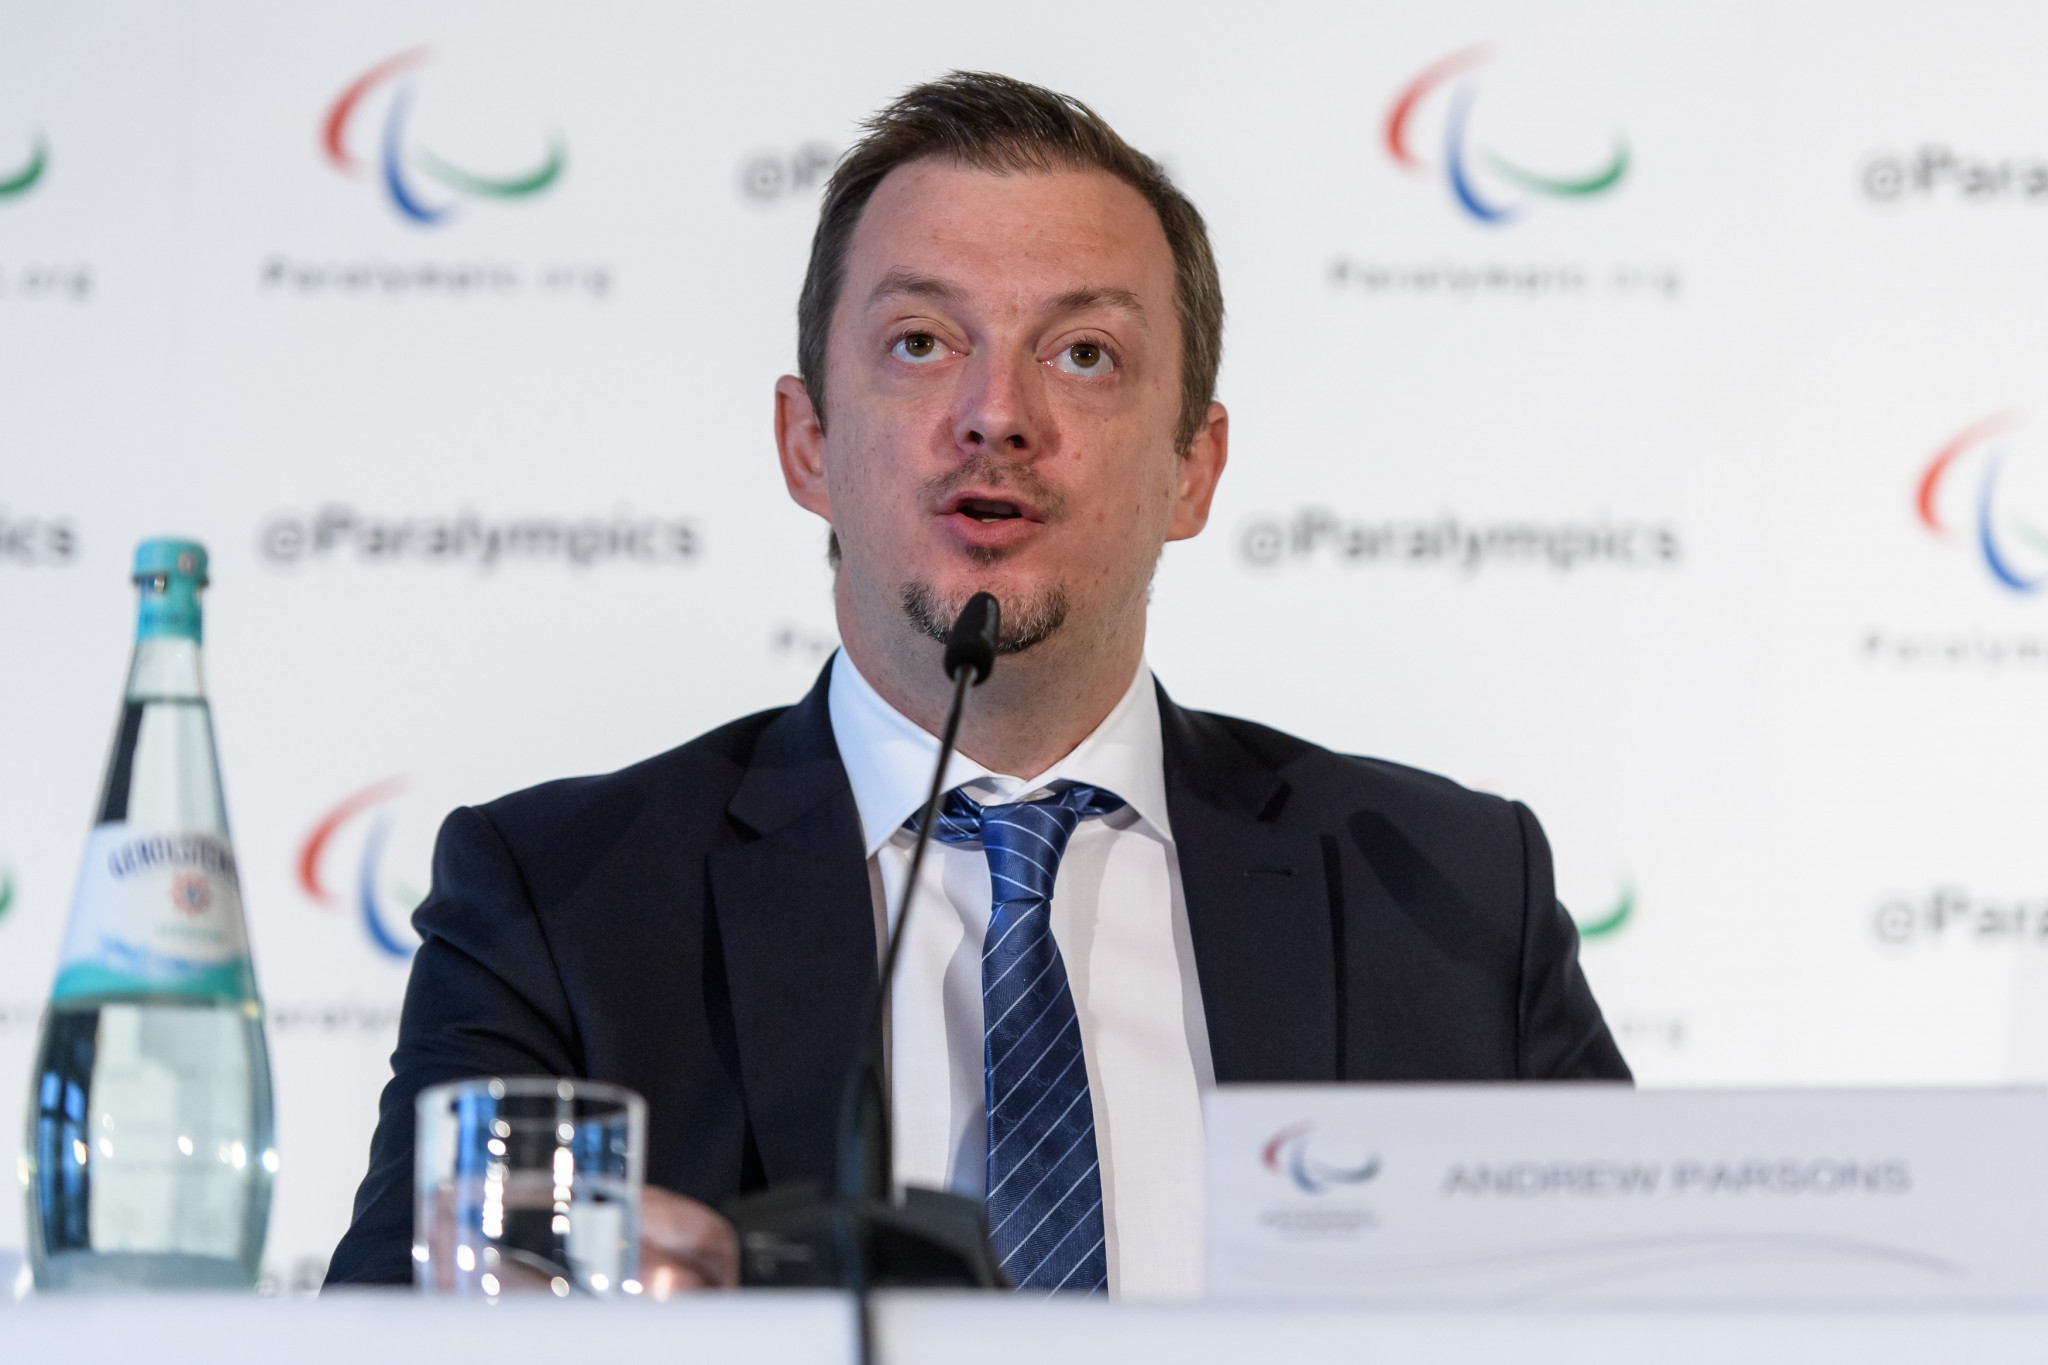 Exclusive: IPC President Parsons reveals new approach to head off crisis over accessible hotel rooms during Tokyo 2020 Paralympics